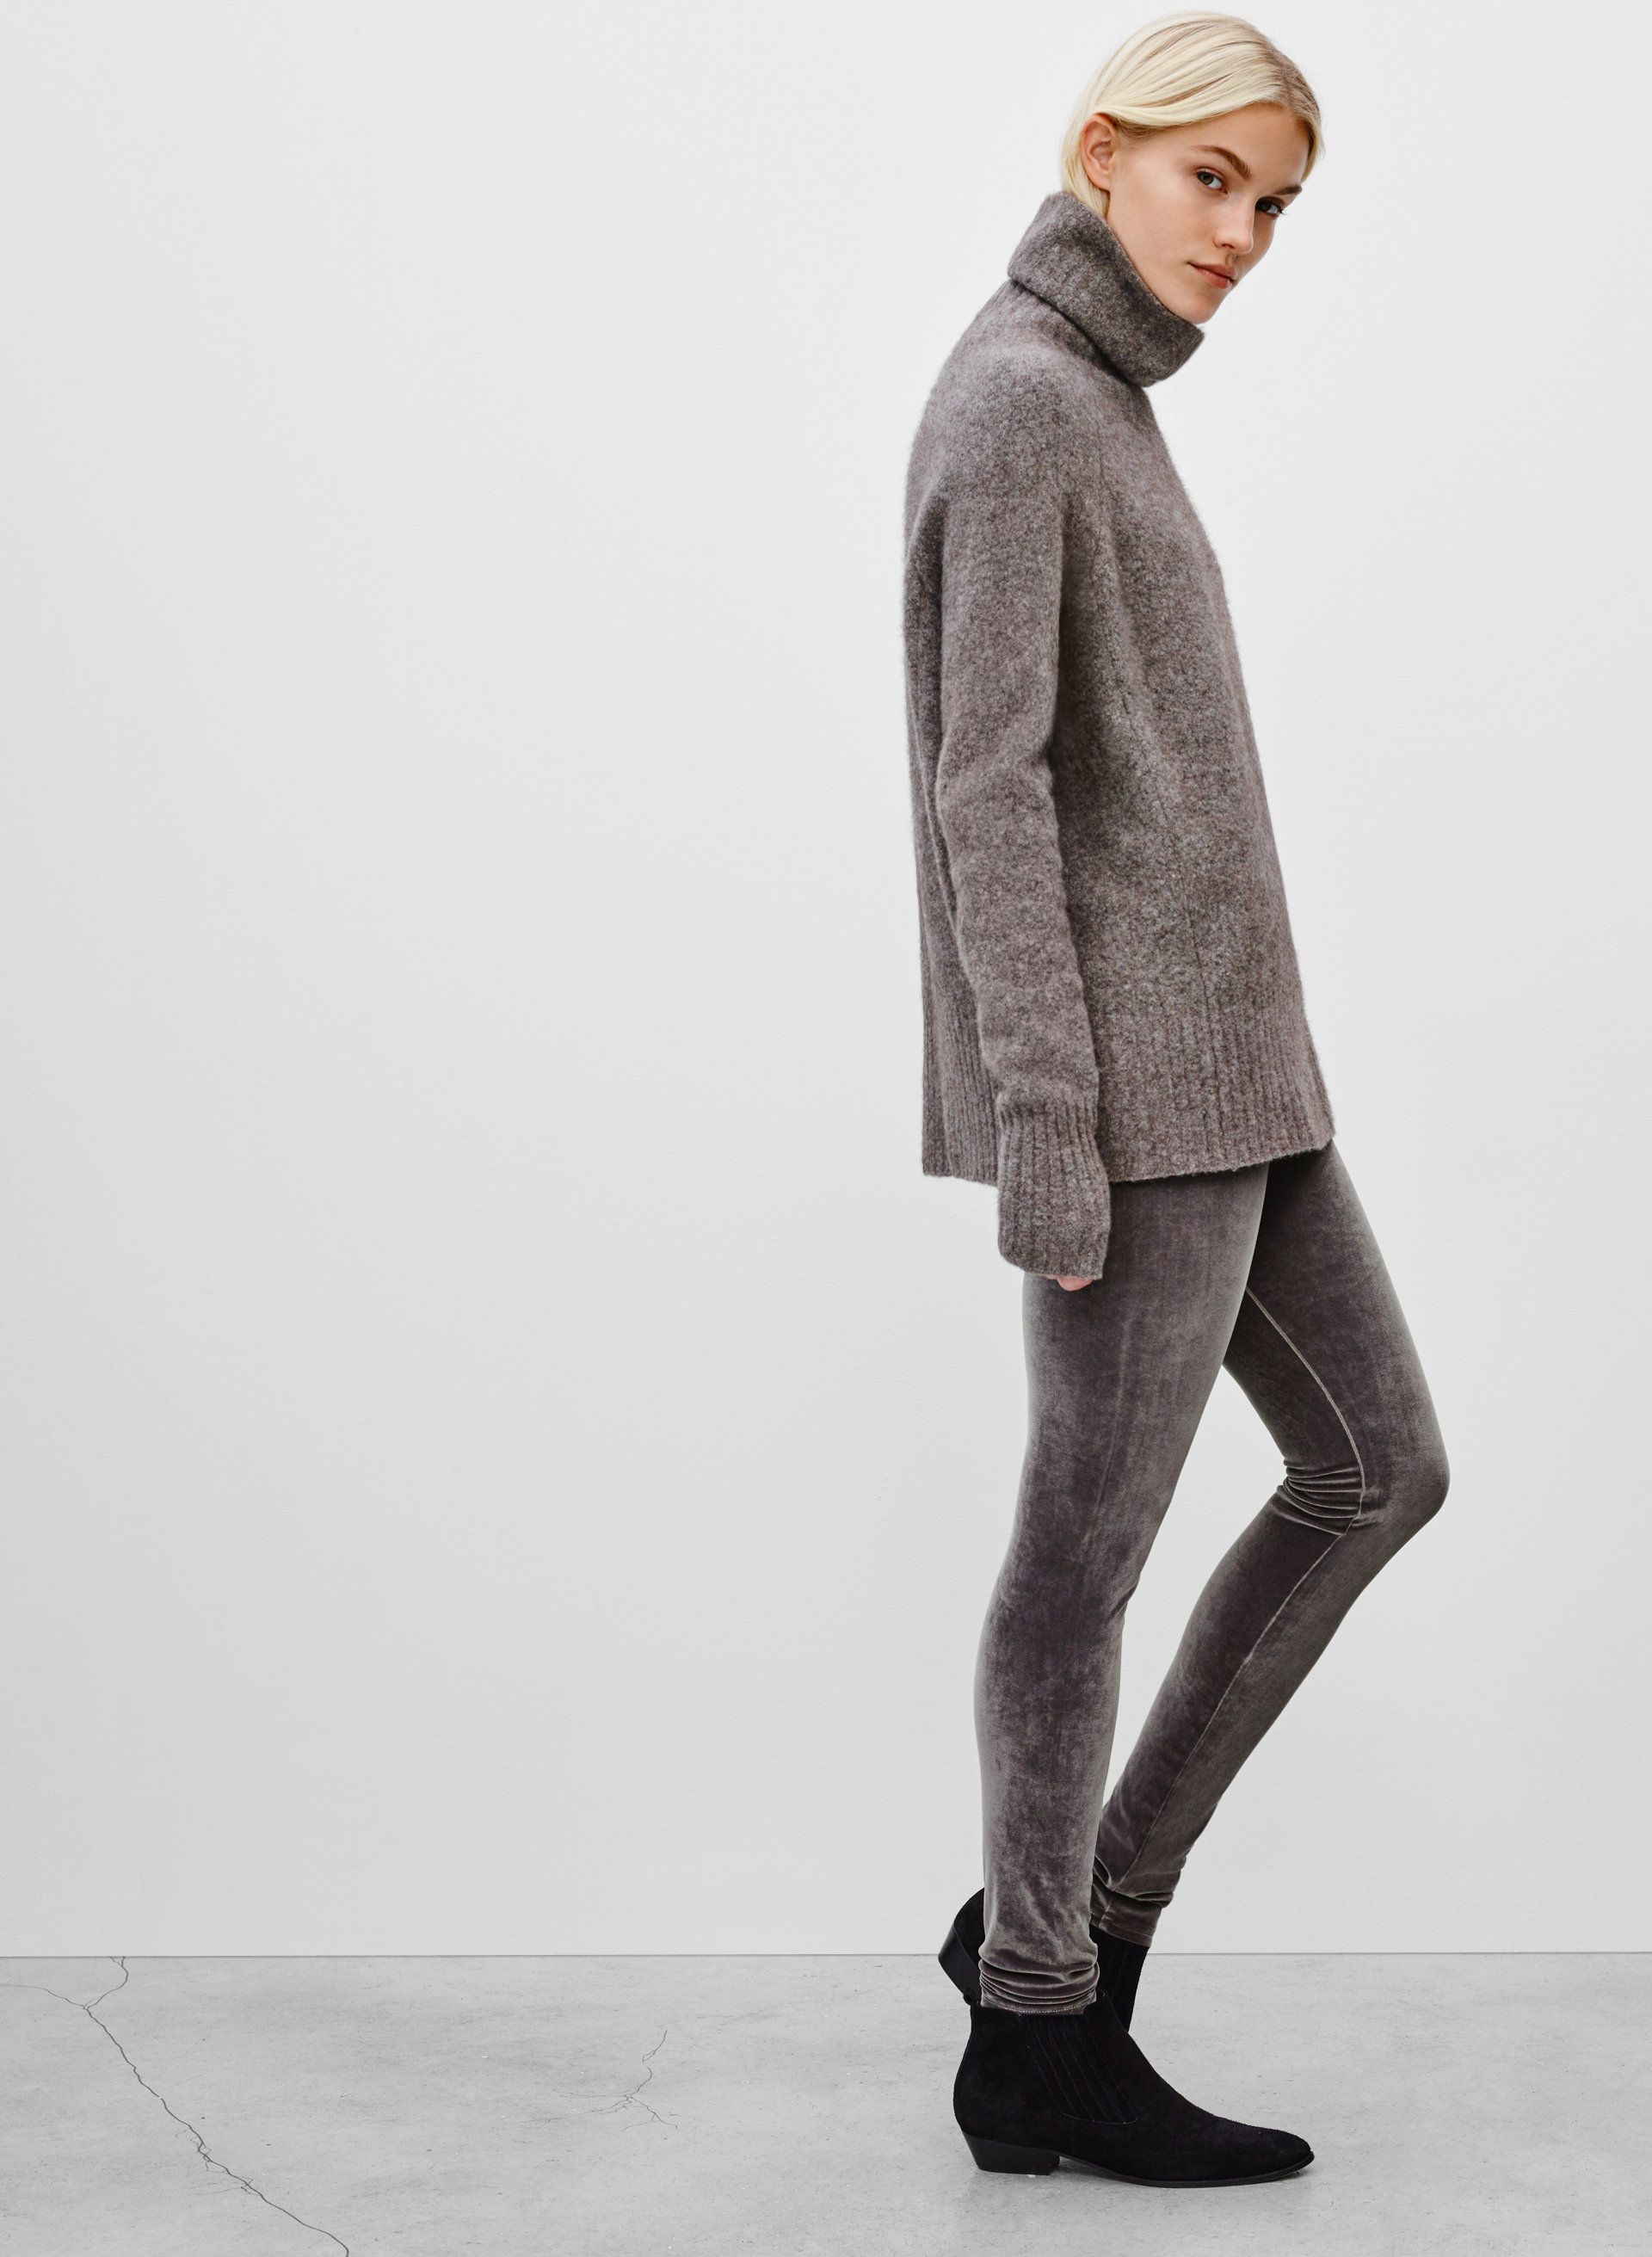 0e4e5eb2f39a7 Velvet for days. The Wilfred Free DARIA PANT | Aritzia | style + on ...